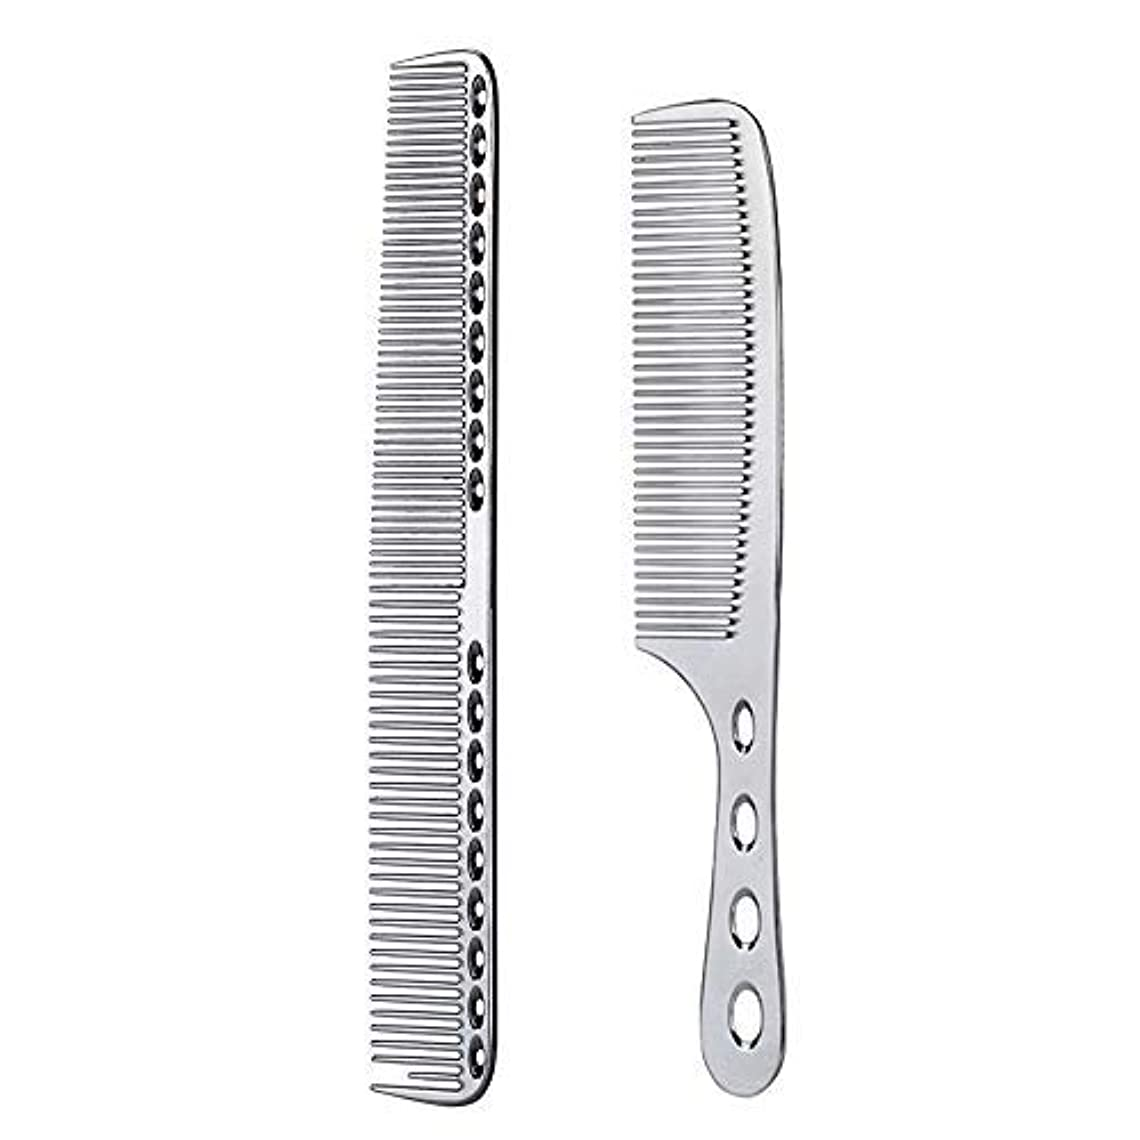 2 pcs Stainless Steel Hair Combs Anti Static Styling Comb Hairdressing Barbers Combs (Silver) [並行輸入品]